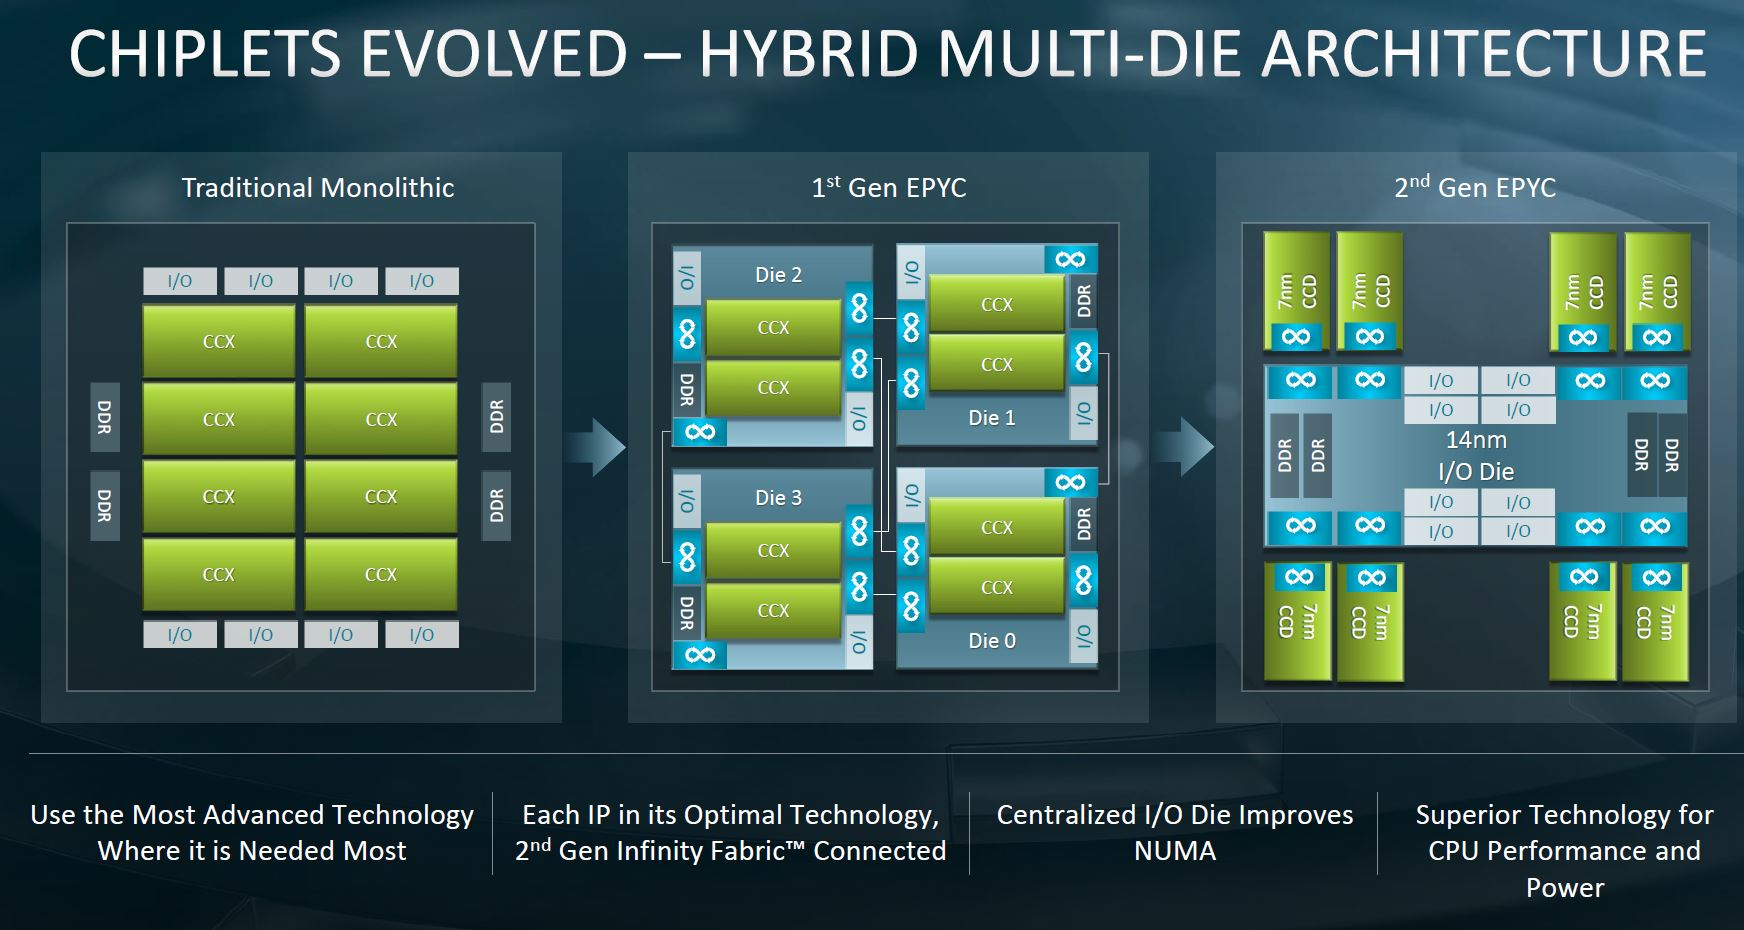 AMD EPYC 7002 Chiplet Evolution